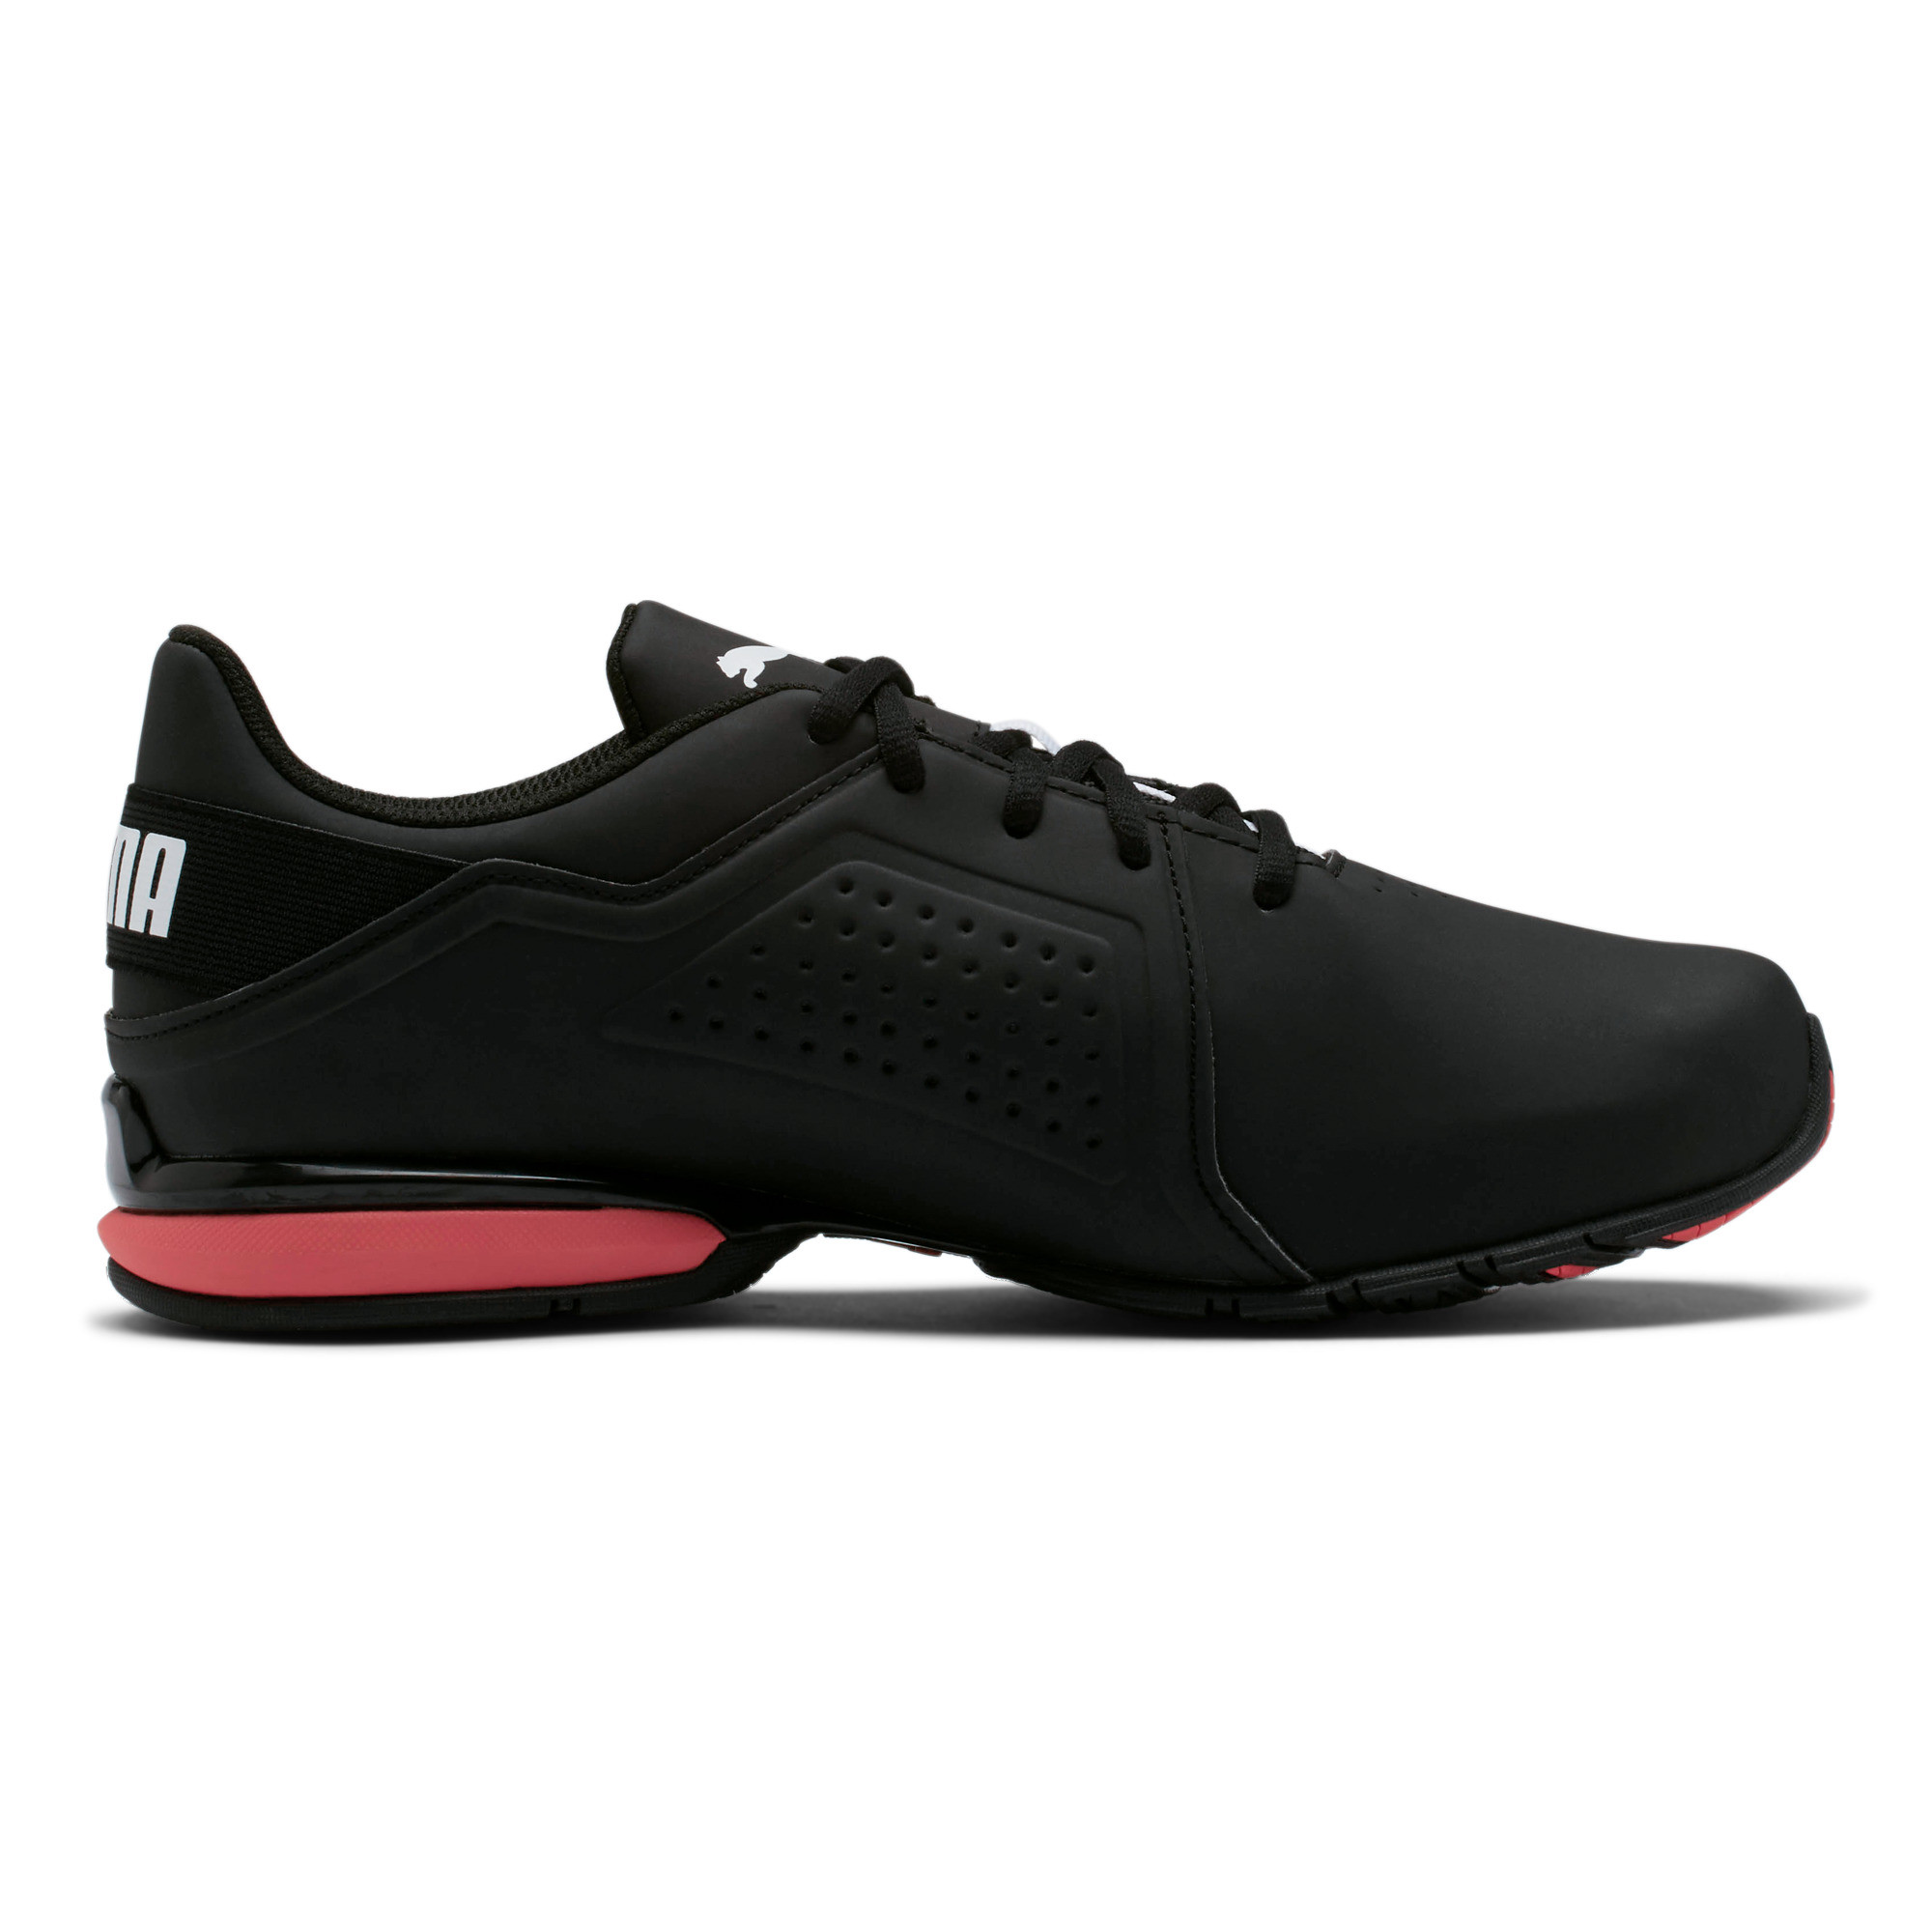 PUMA-Viz-Runner-Men-s-Running-Shoes-Men-Shoe-Running thumbnail 6